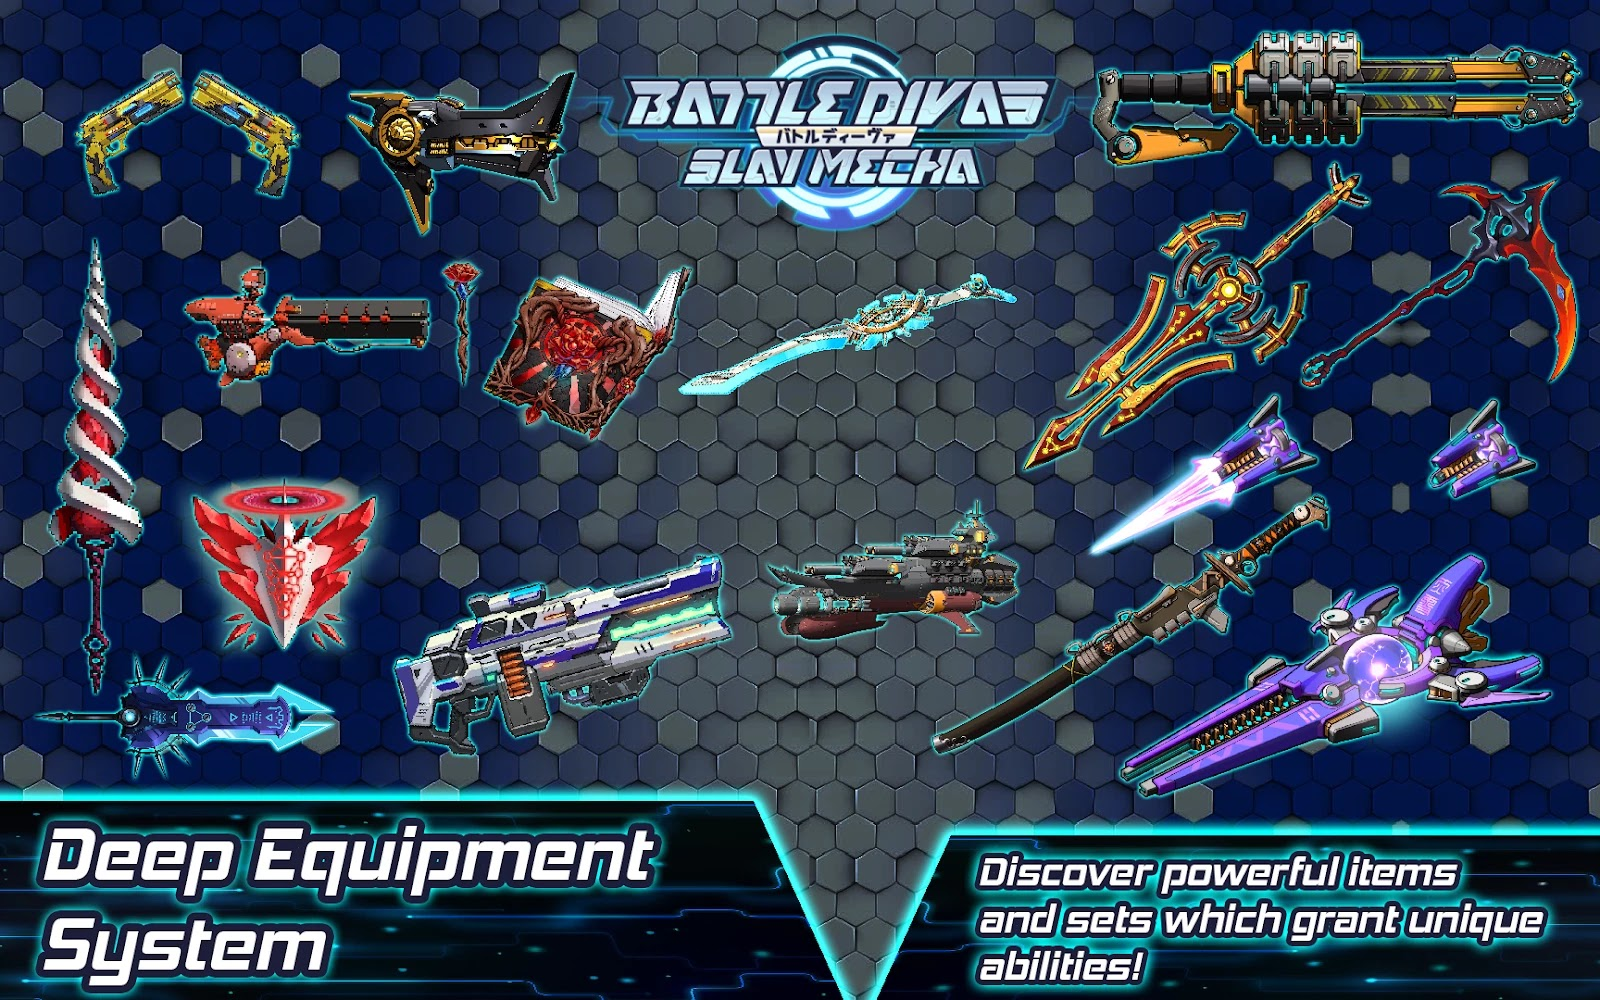 Battle Divas: Slay Mecha - weapons